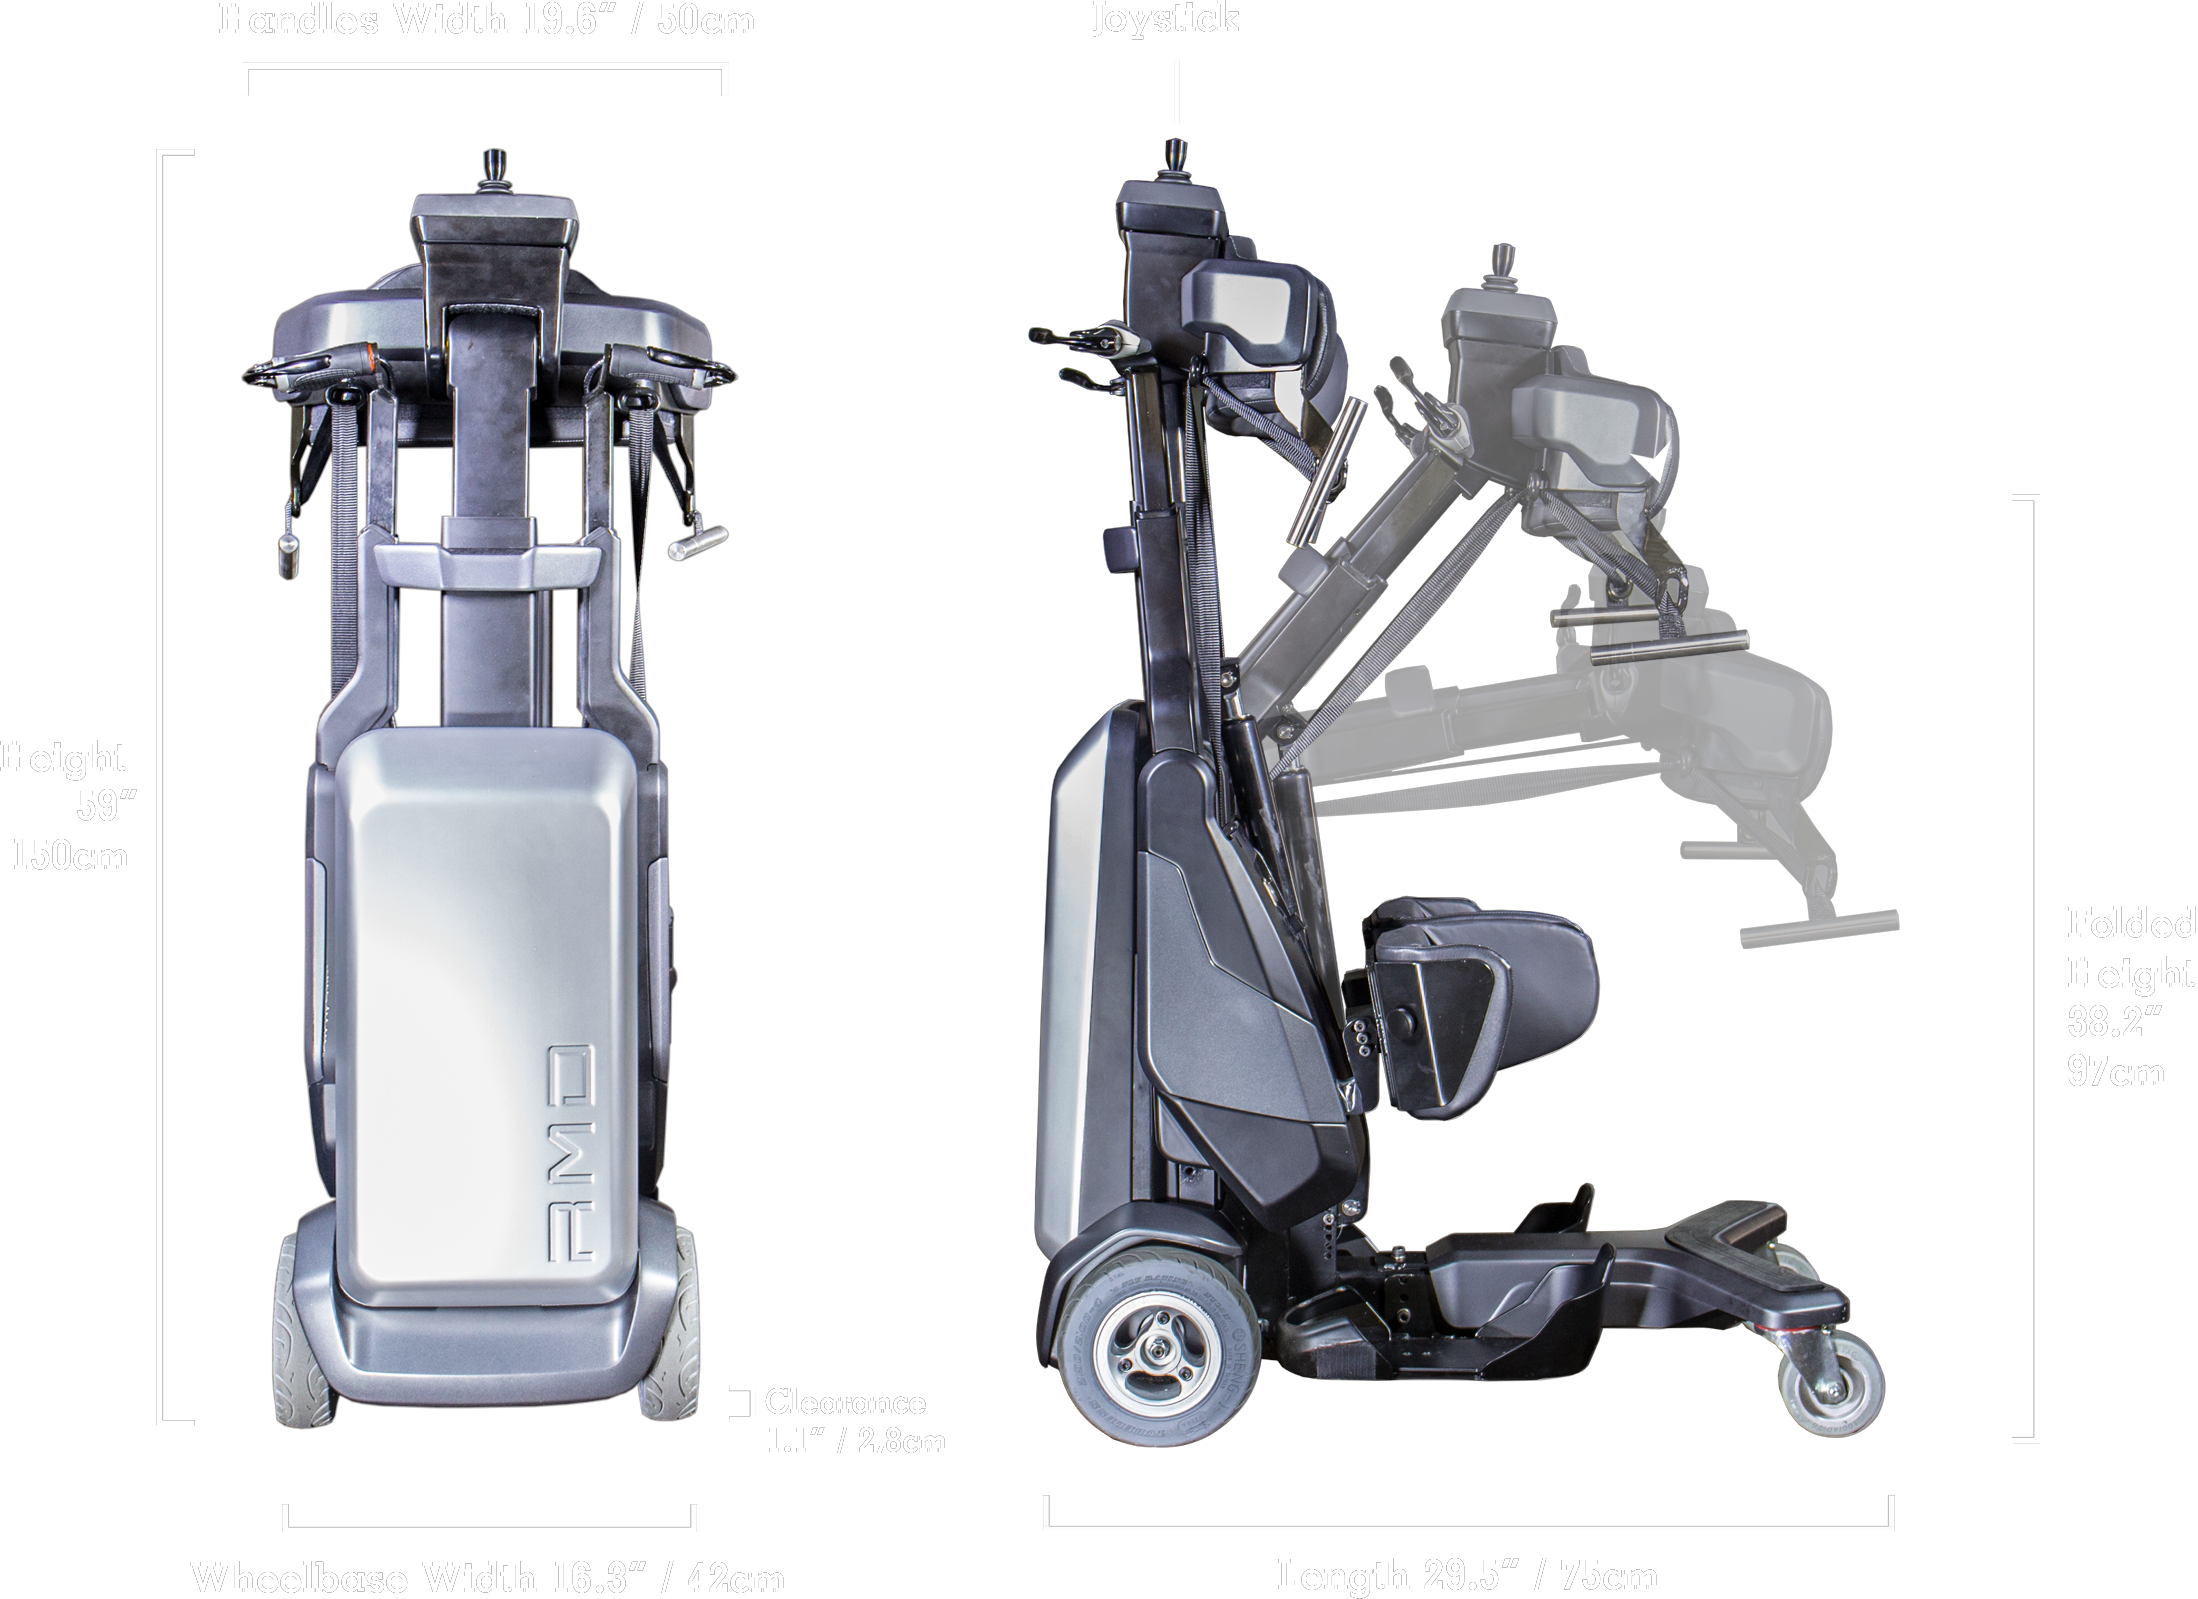 The Tek RMD is set up to suit the stature of the user and is narrower and shorter than a wheelchair